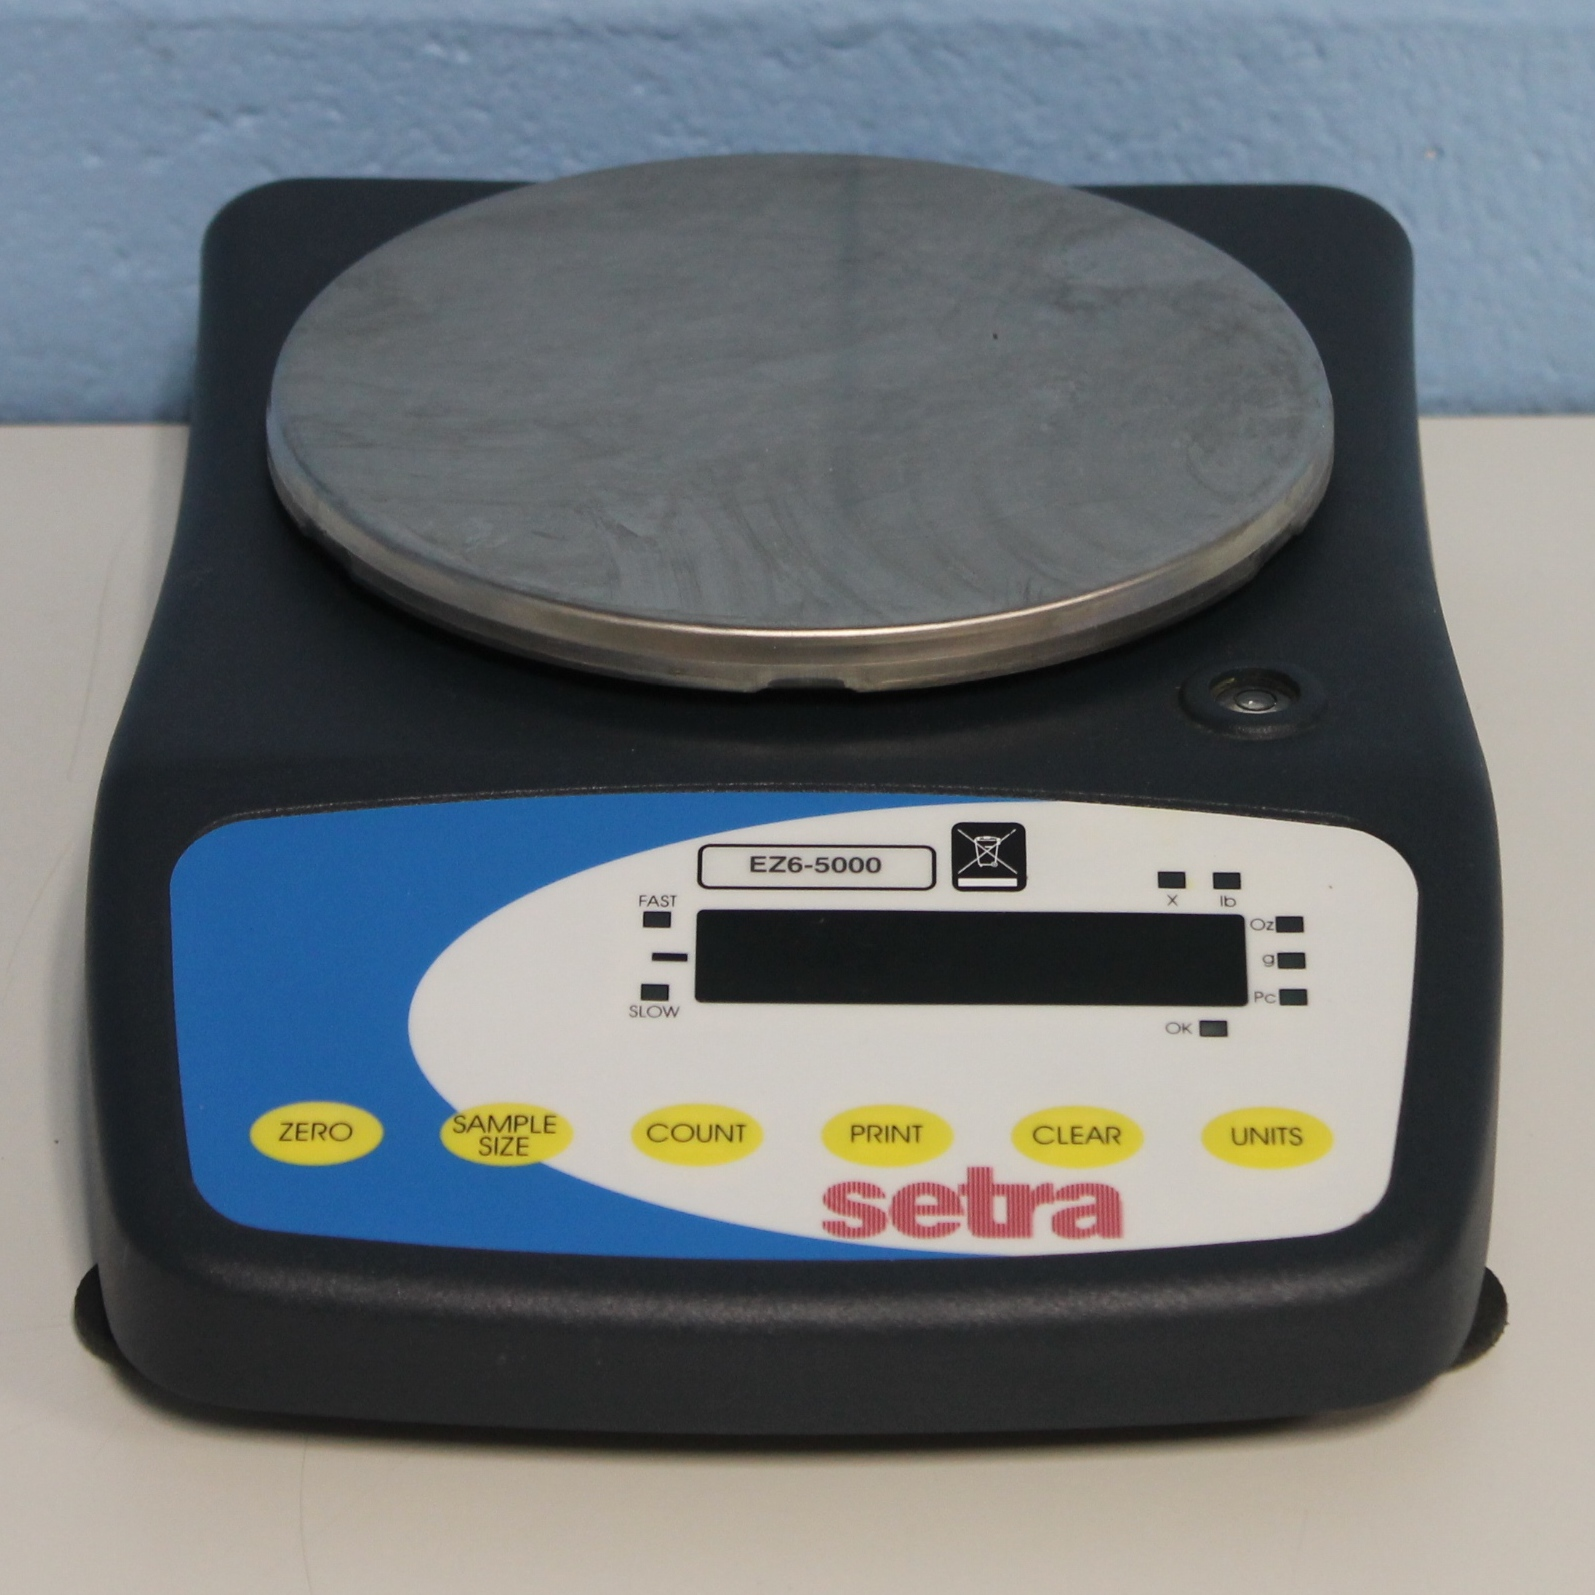 EZ6-5000 Digital Counting Scale